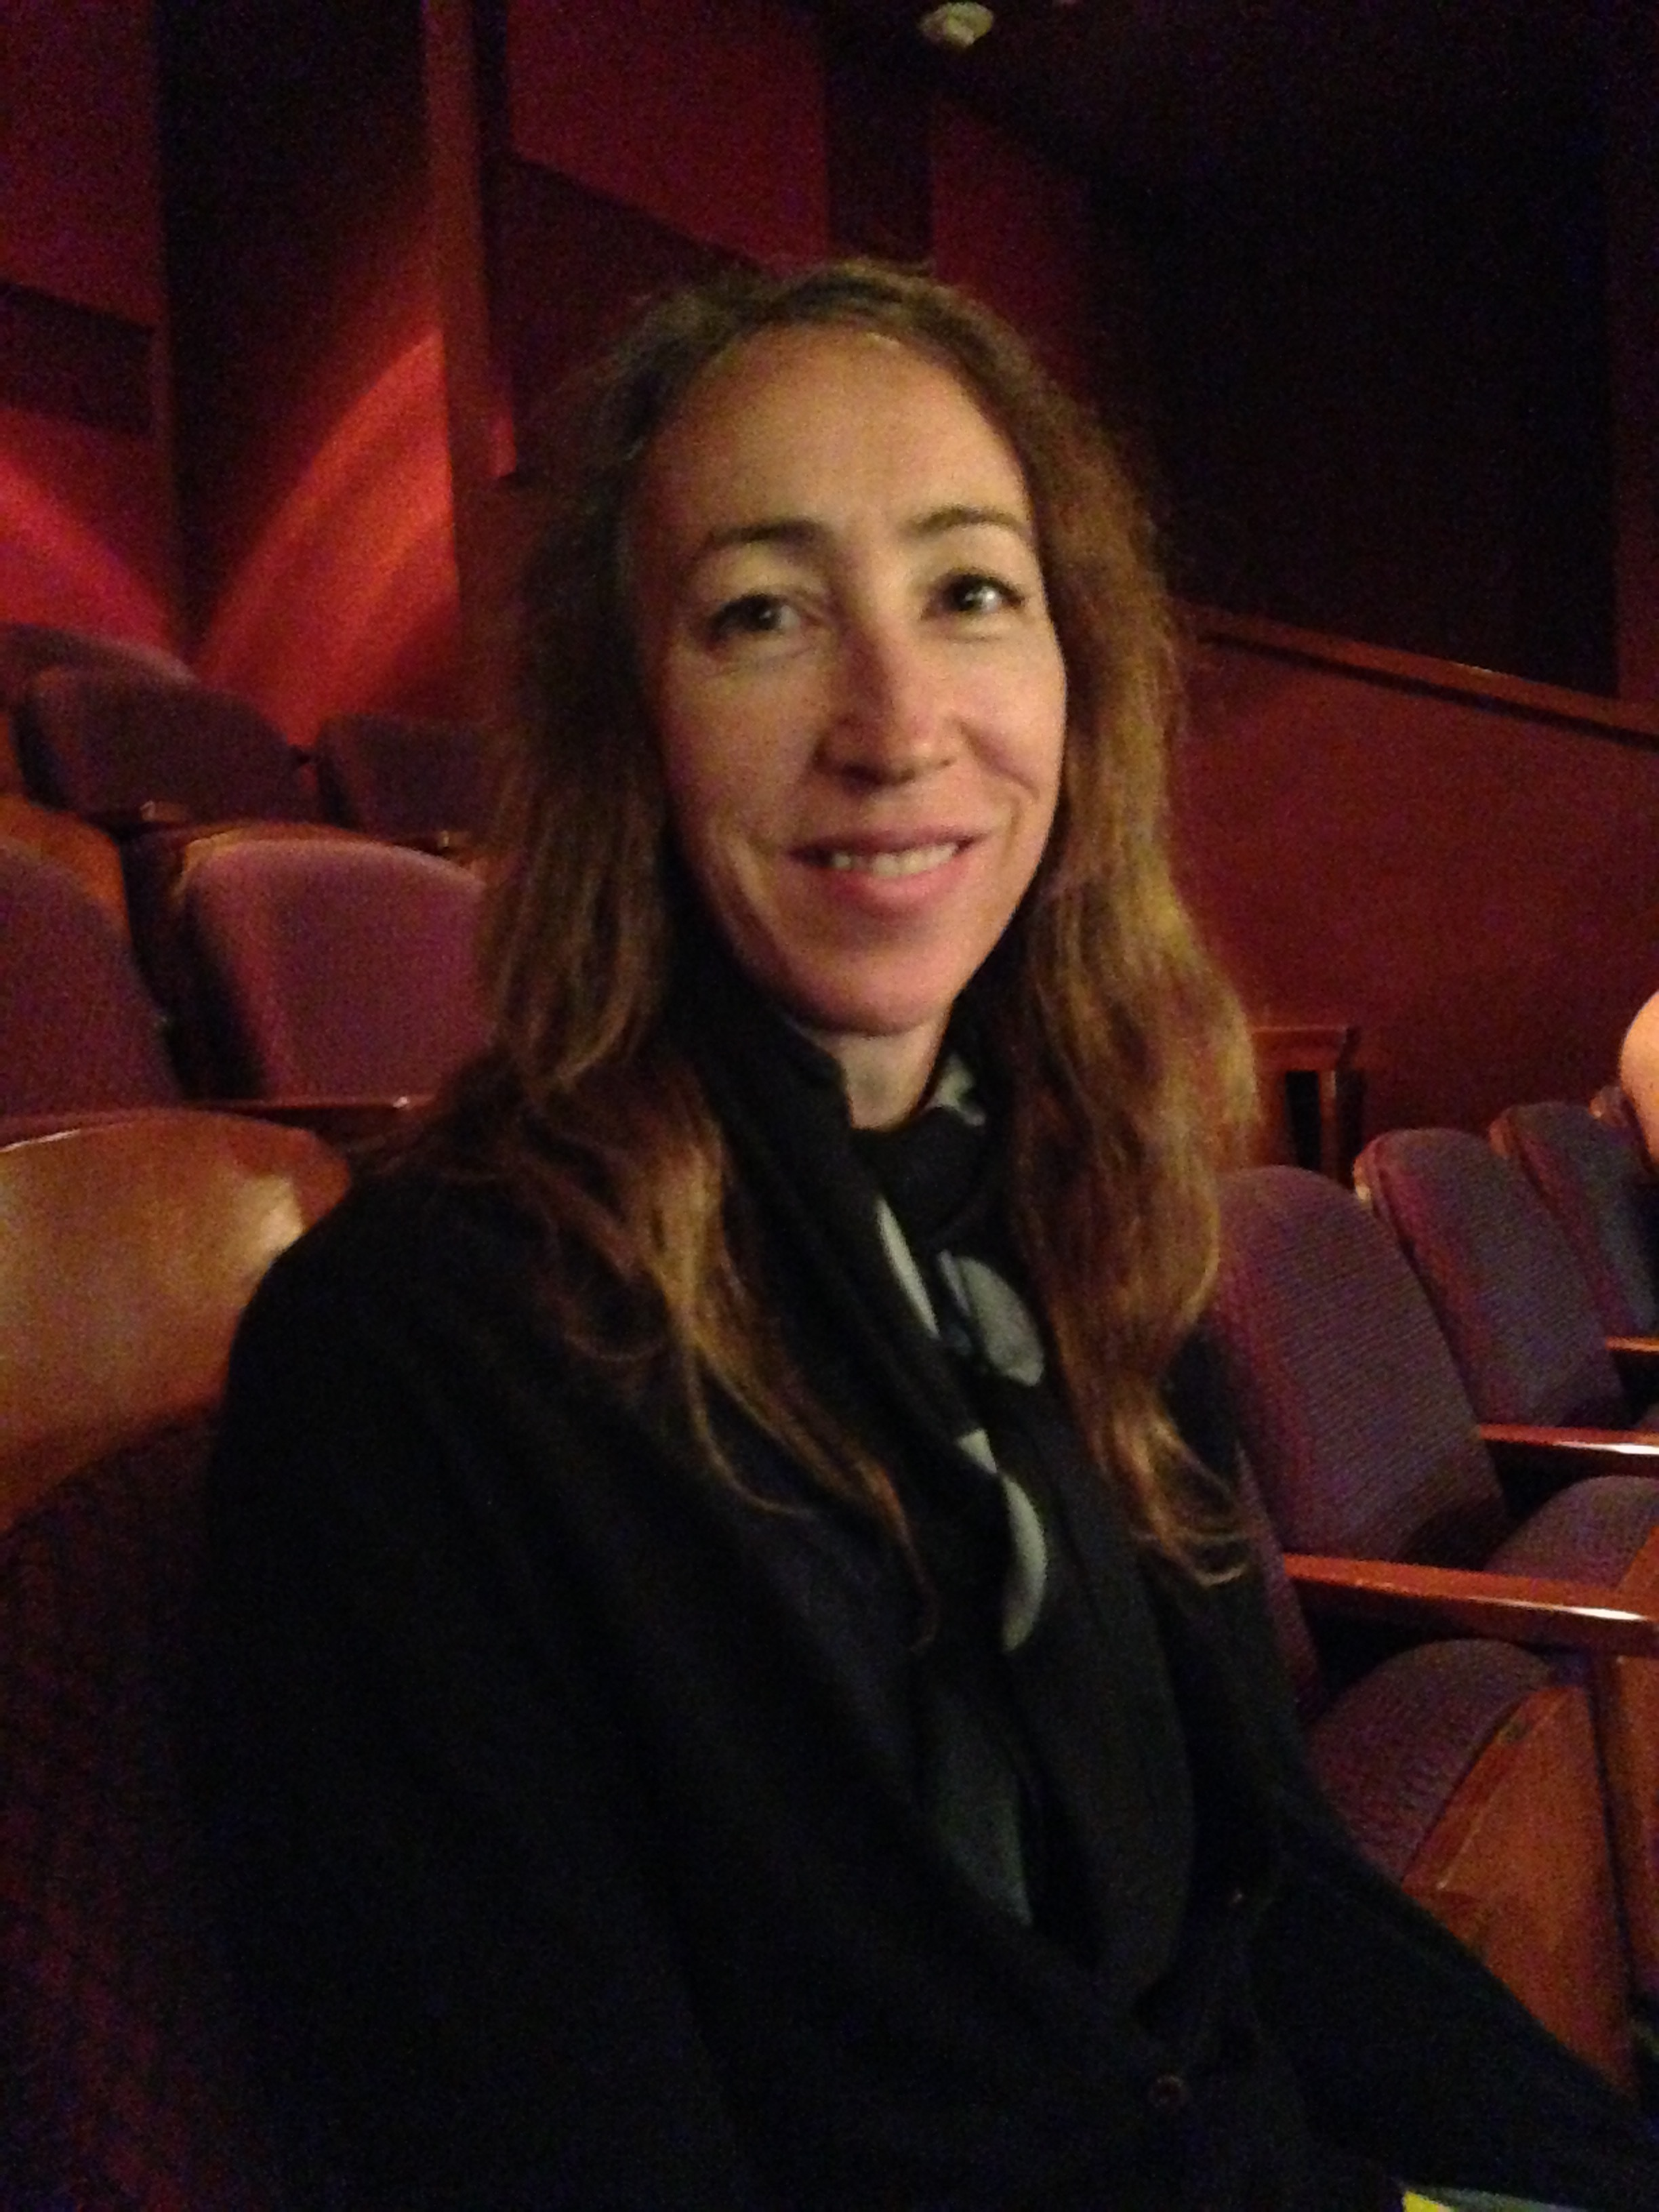 ^ Inside the Dolby